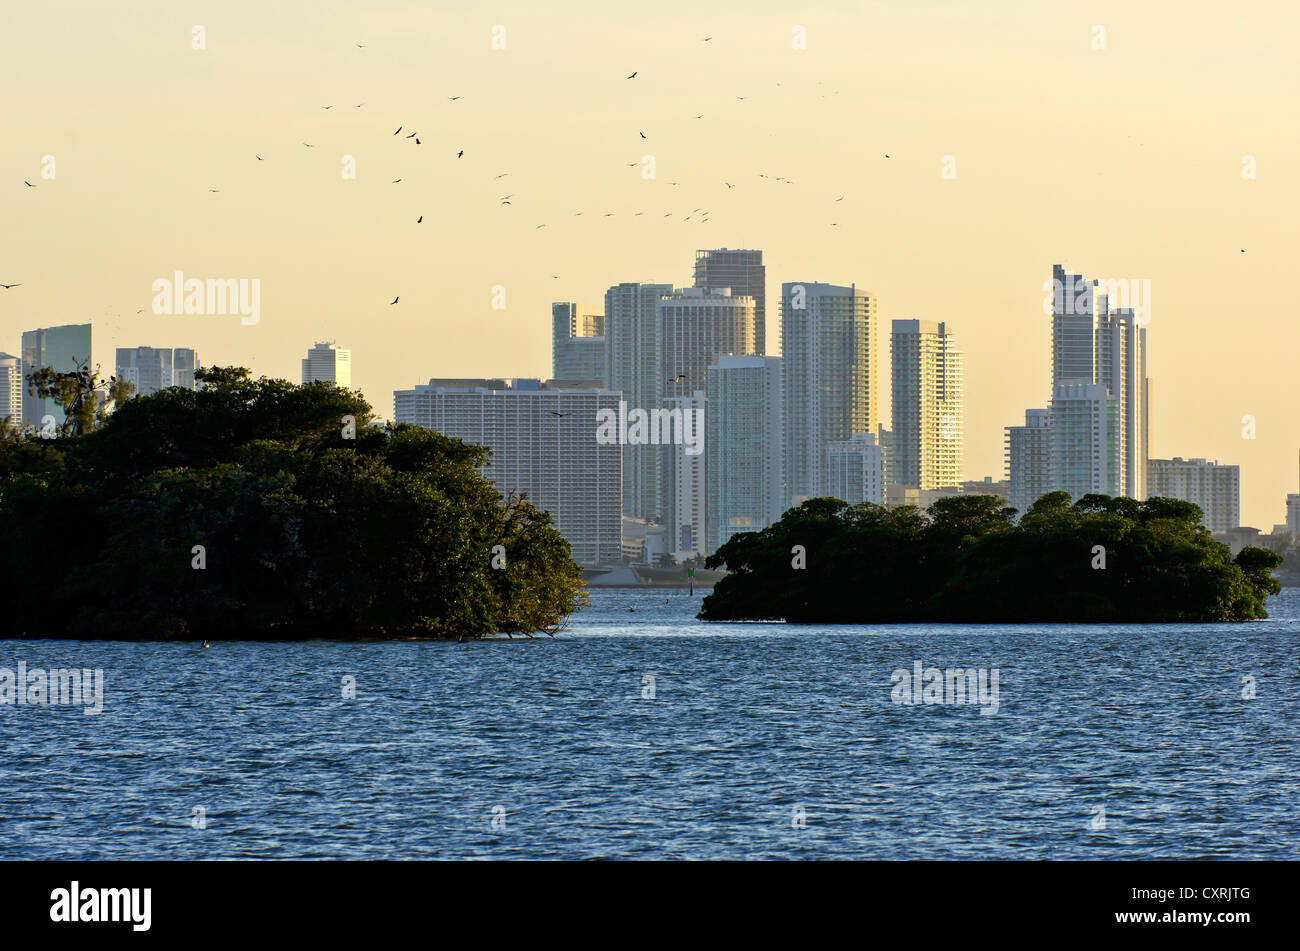 Housing complex at Mount Sinai Medical Center with small islands in the foreground, seen from Morningside Park, - Stock Image